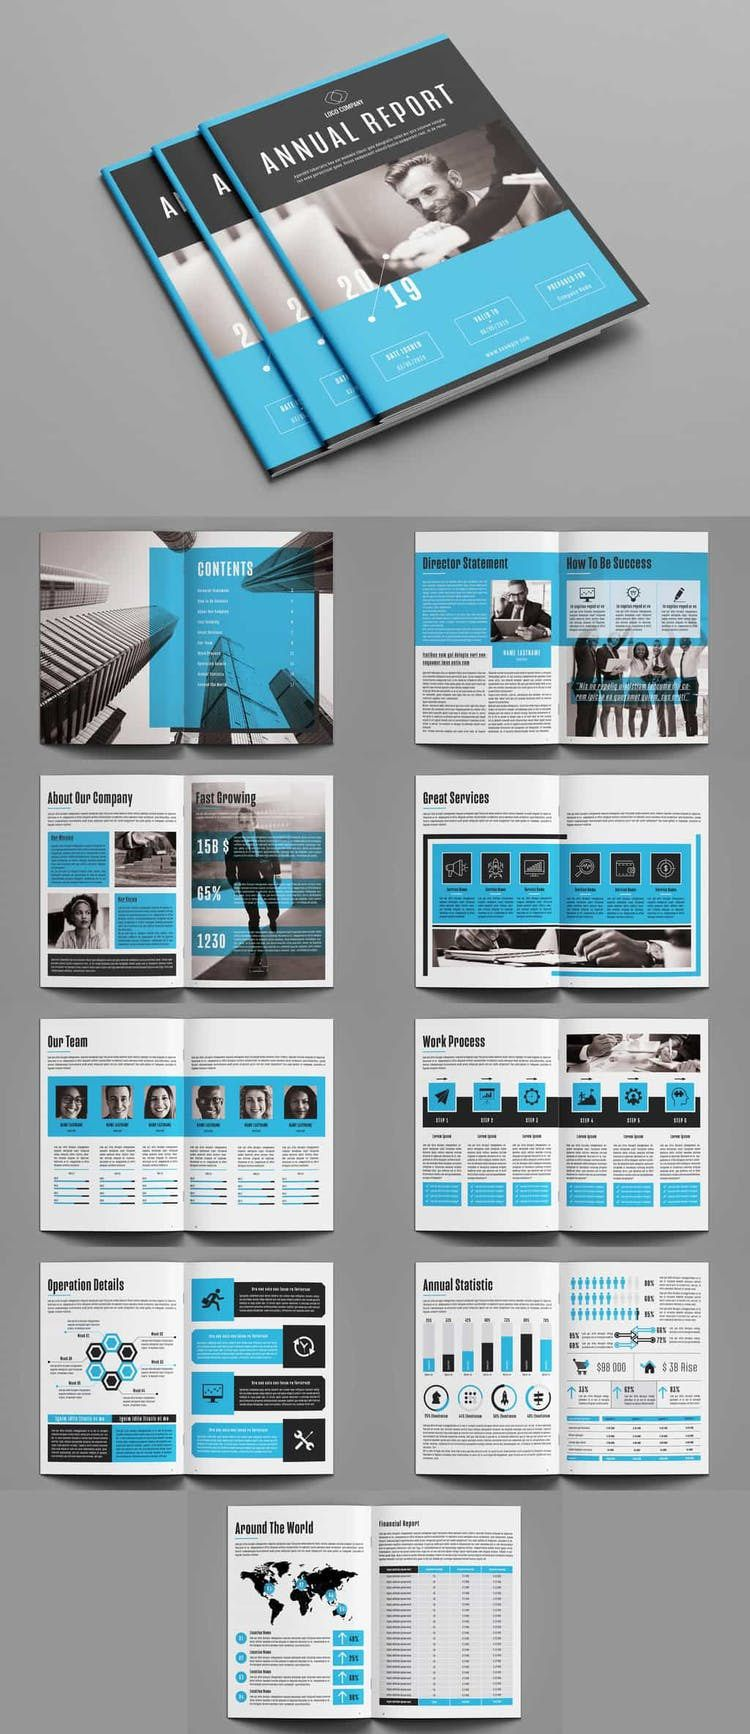 005 Best Annual Report Design Template Indesign Concept  Free DownloadFull